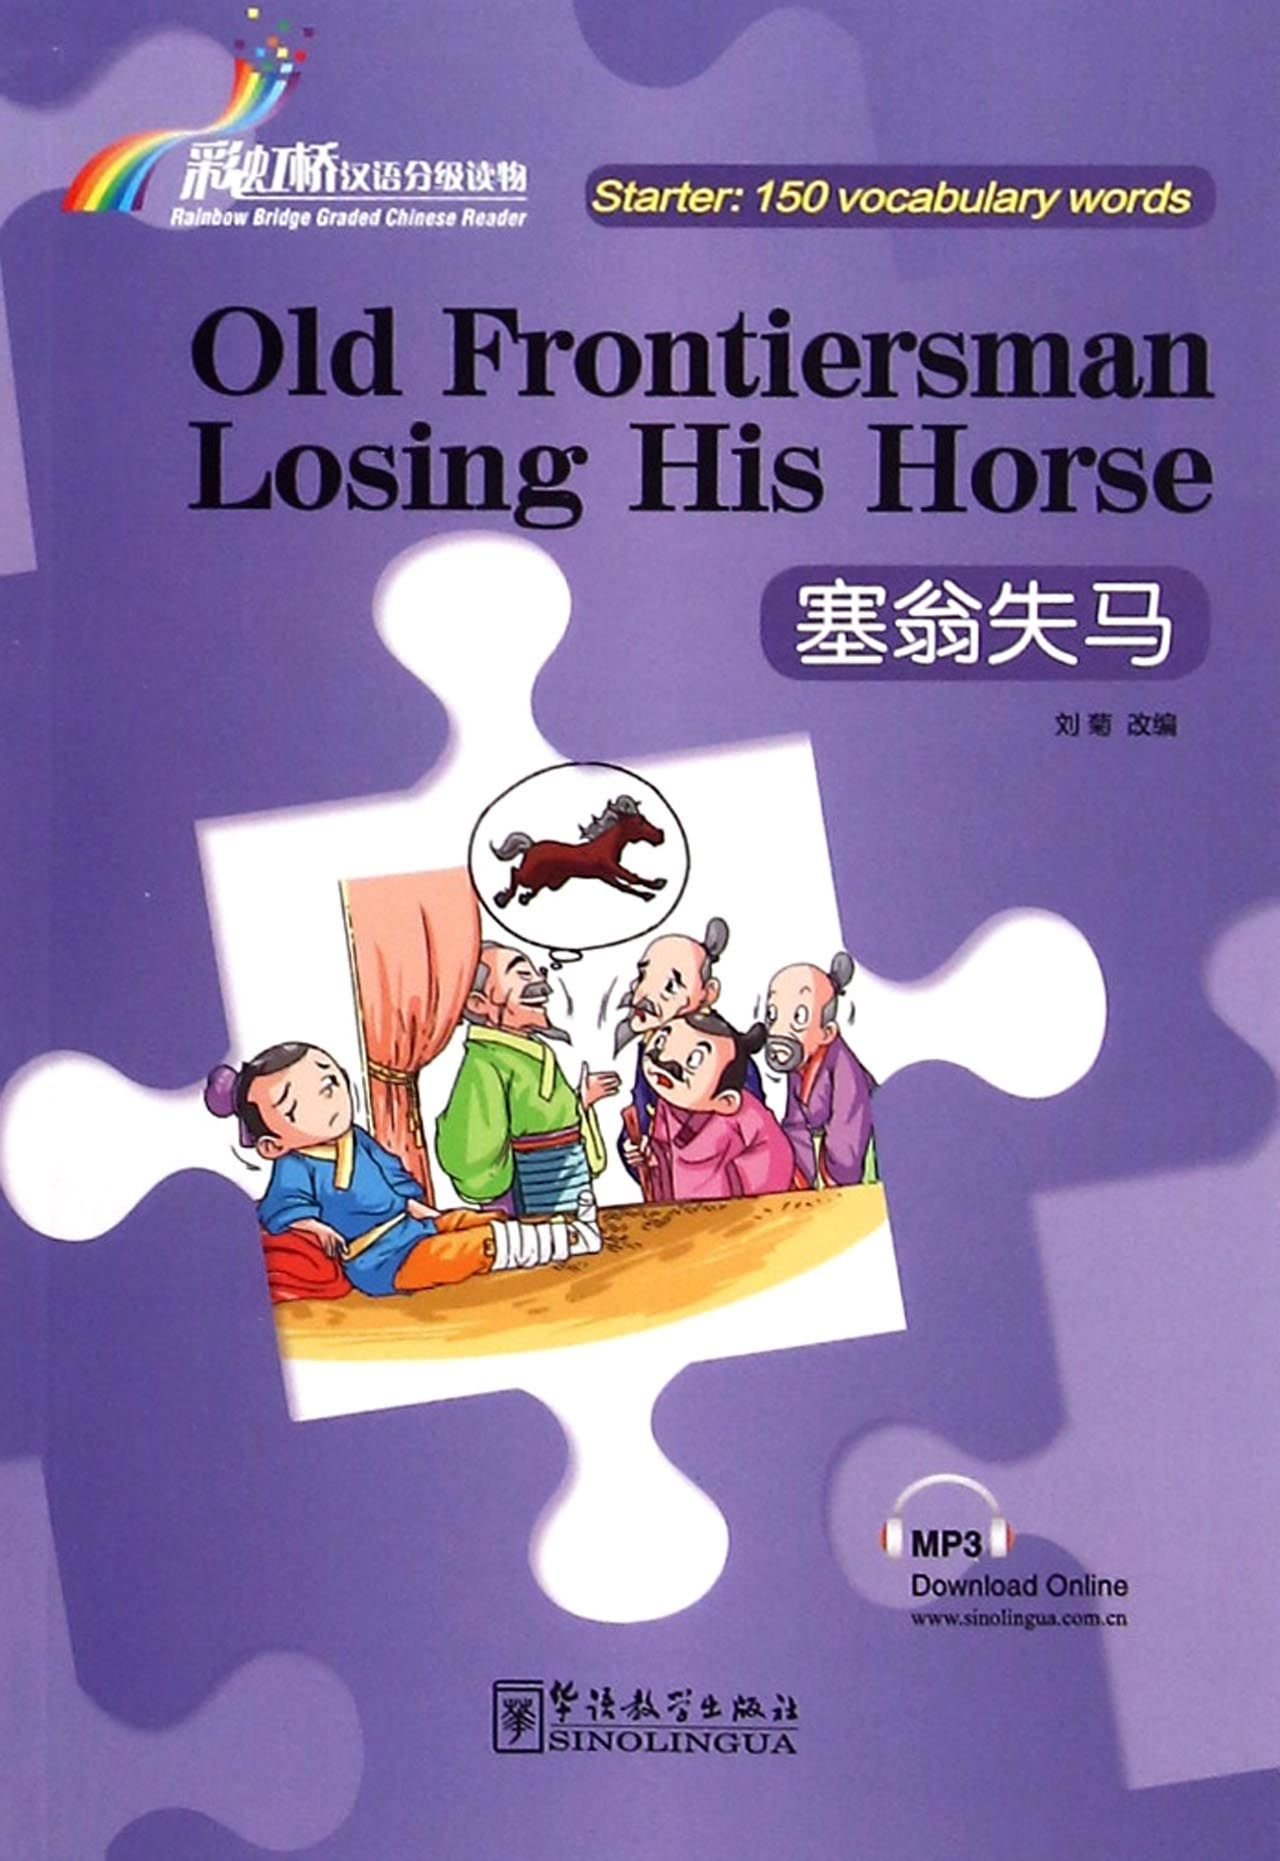 Read Online Old Frontiersman Losing His Horse - Rainbow Bridge Graded Chinese Reader, Starter : 150 Vocabulary Words (English and Chinese Edition) ebook